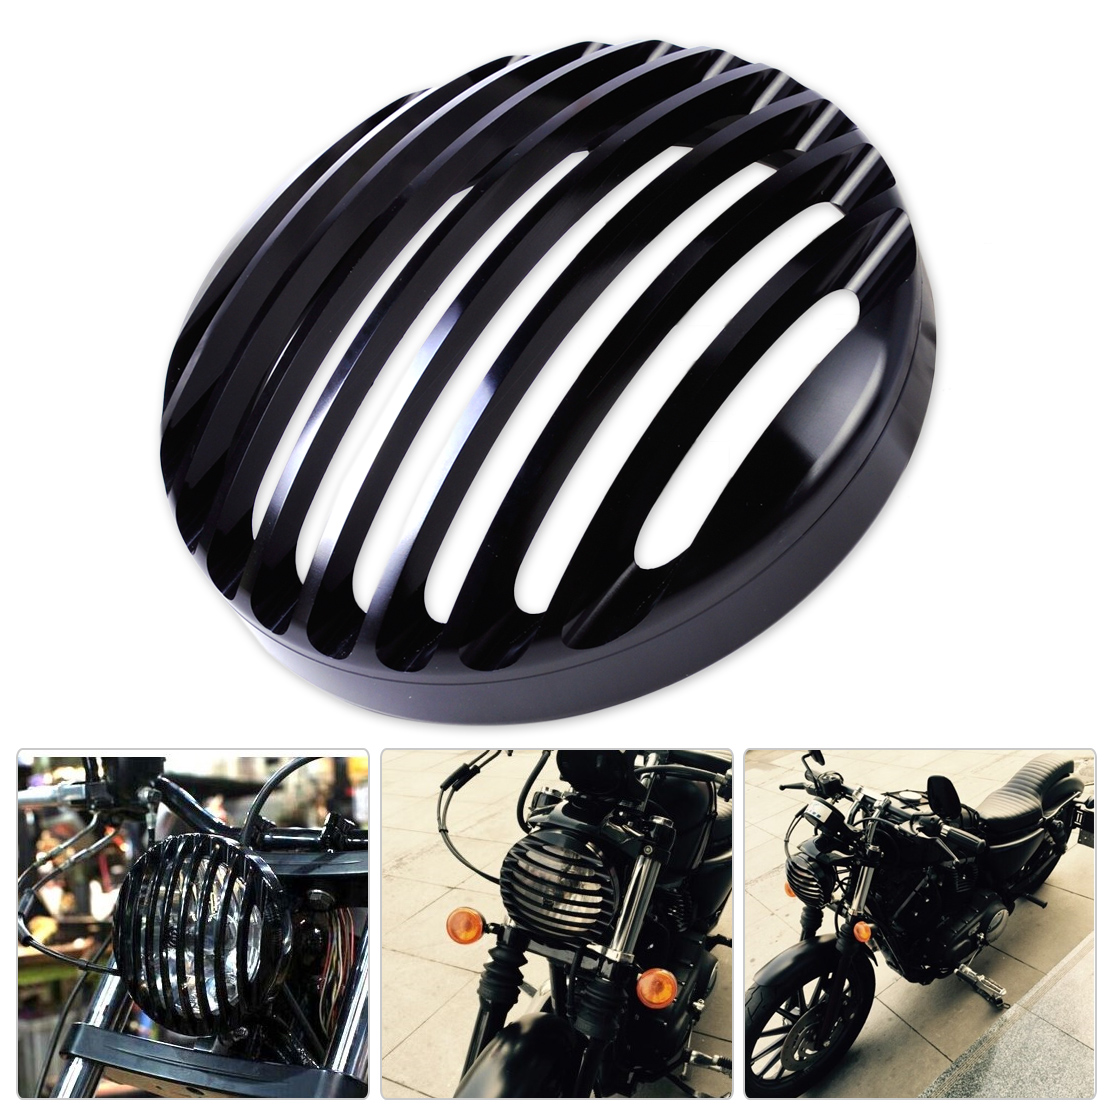 DWCX New Black Aluminum Headlight Grill Cover for Harley Davidson Sportster XL 883 1200 2004-2008 2009 2010 2011 2012 2013 2014 car rear trunk security shield shade cargo cover for nissan qashqai 2008 2009 2010 2011 2012 2013 black beige